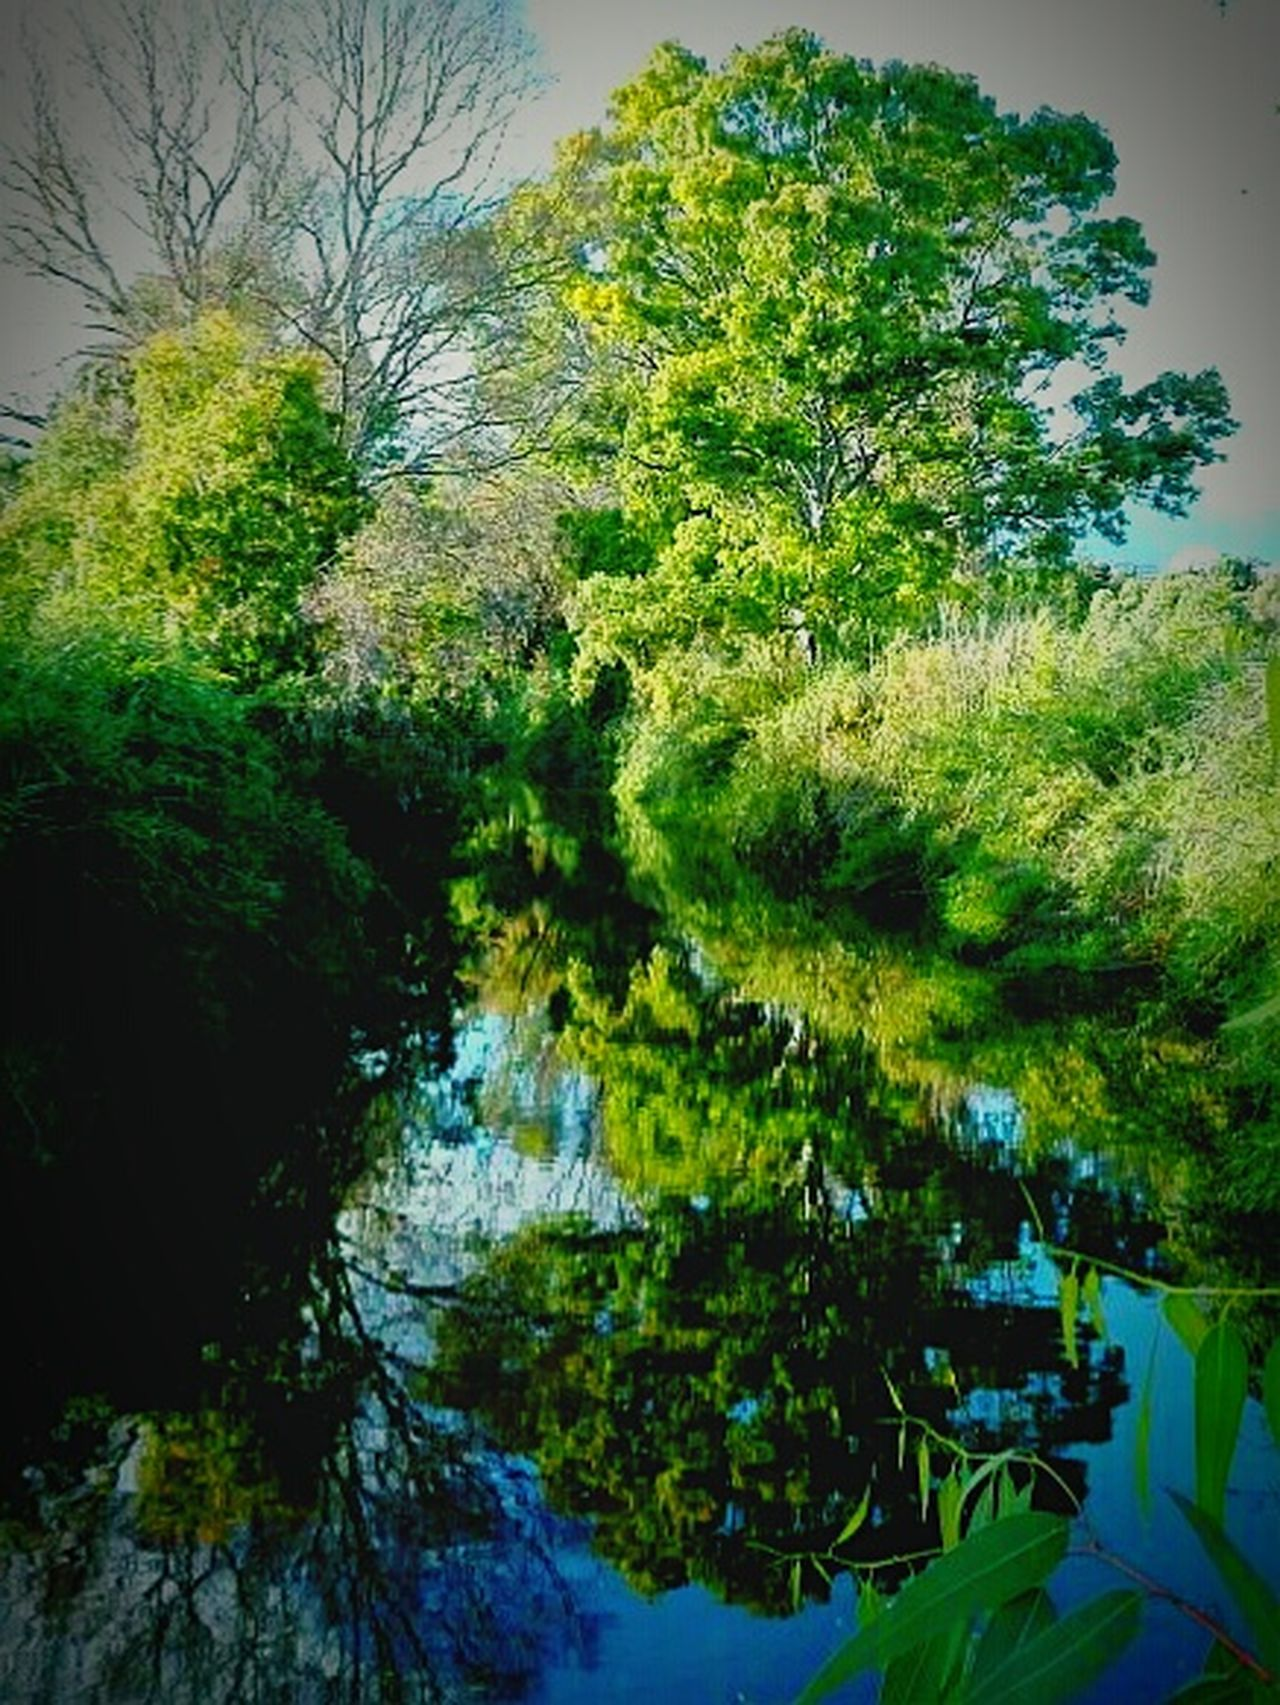 Nature Water Reflection Outdoors Green Color Tranquil Scene No People Scenics Tree Day Beauty In Nature The Great Outdoors - 2017 EyeEm Awards Landscape Spain🇪🇸 Analuisa Marbella